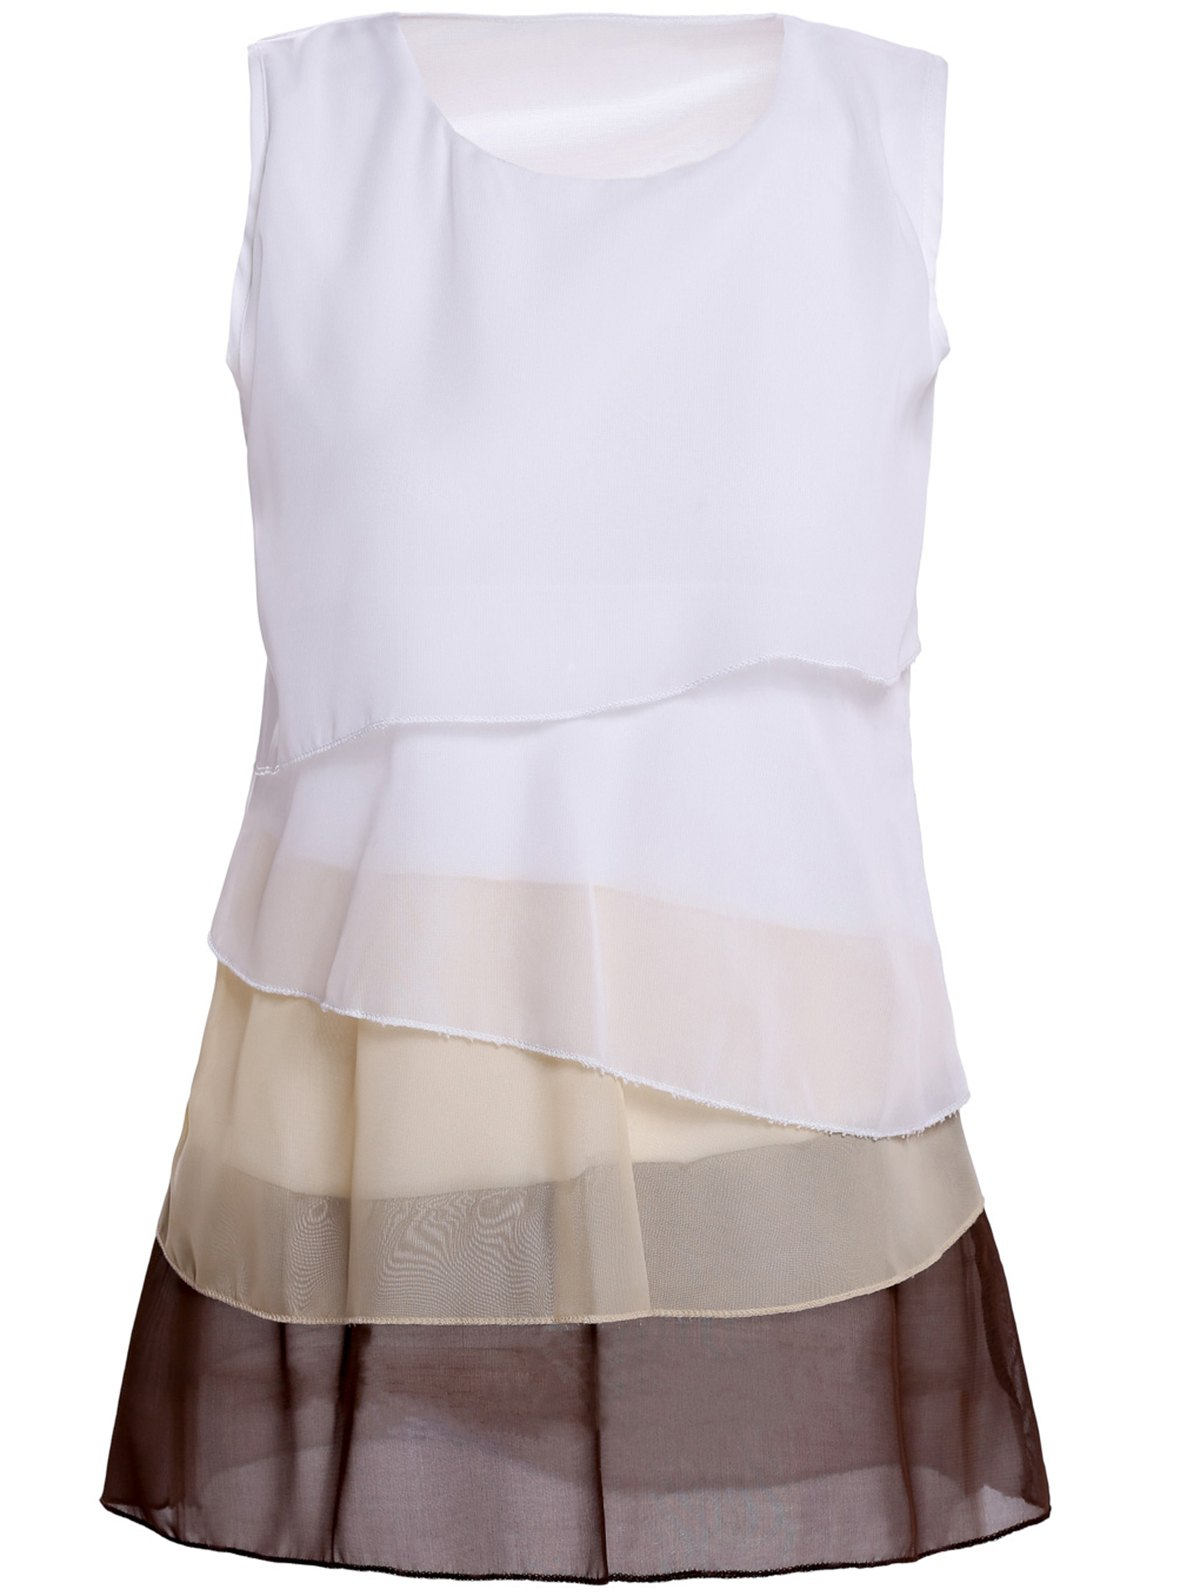 Sleeveless Tiered Color Block Blouse - BROWN 3XL